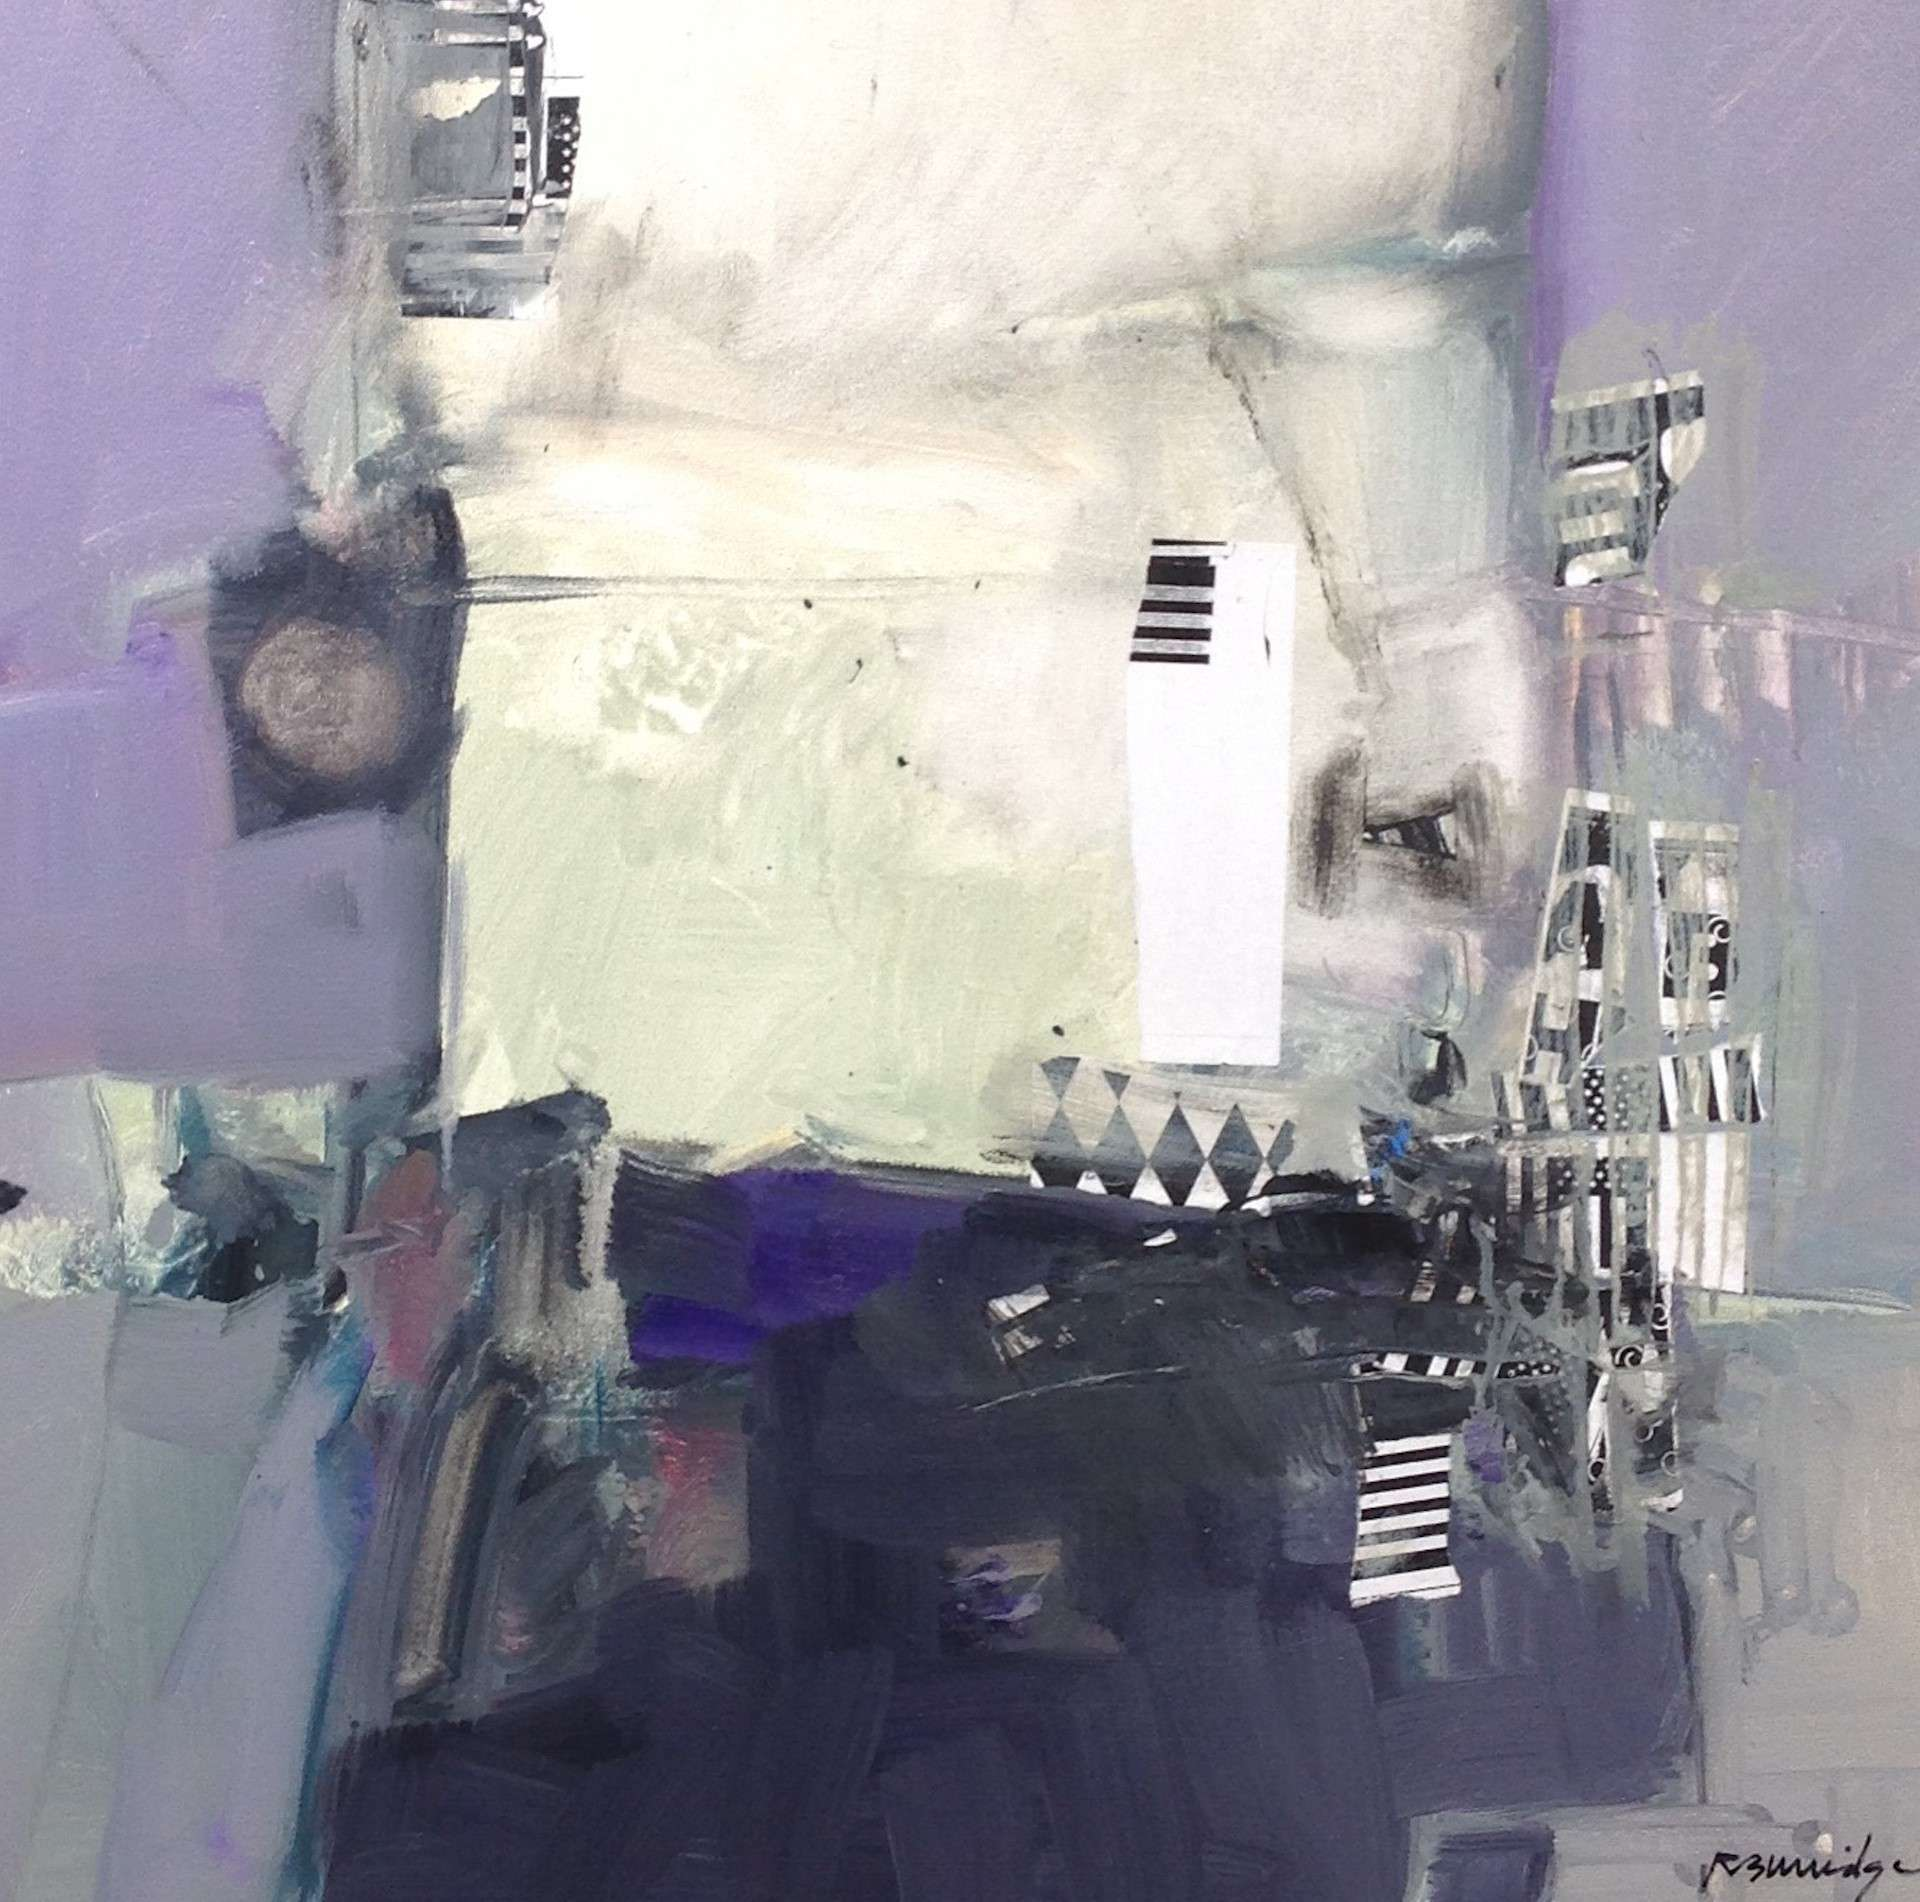 Robert Burridge Abstract Painting in shades of lavender, gray and white